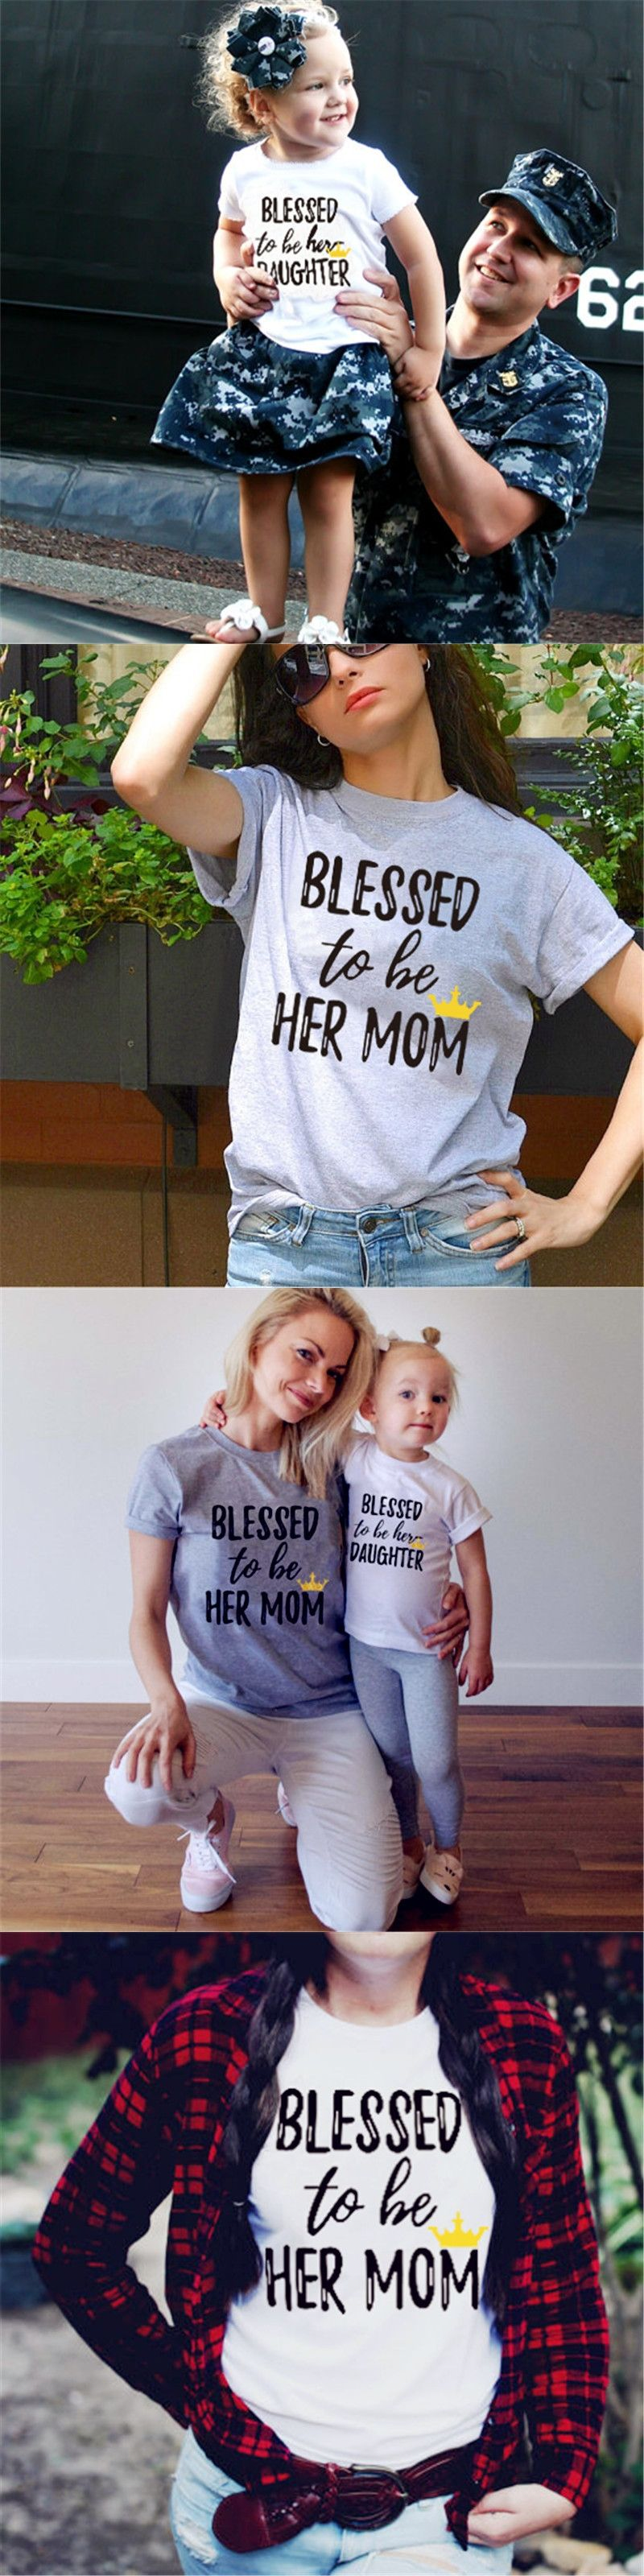 472c7cc315d Blessed to be Her Mom and Daughter Family Matching Shirt Casual T-shirt  Tops Clothes Outfits White Cotton Short Sleeve O neck